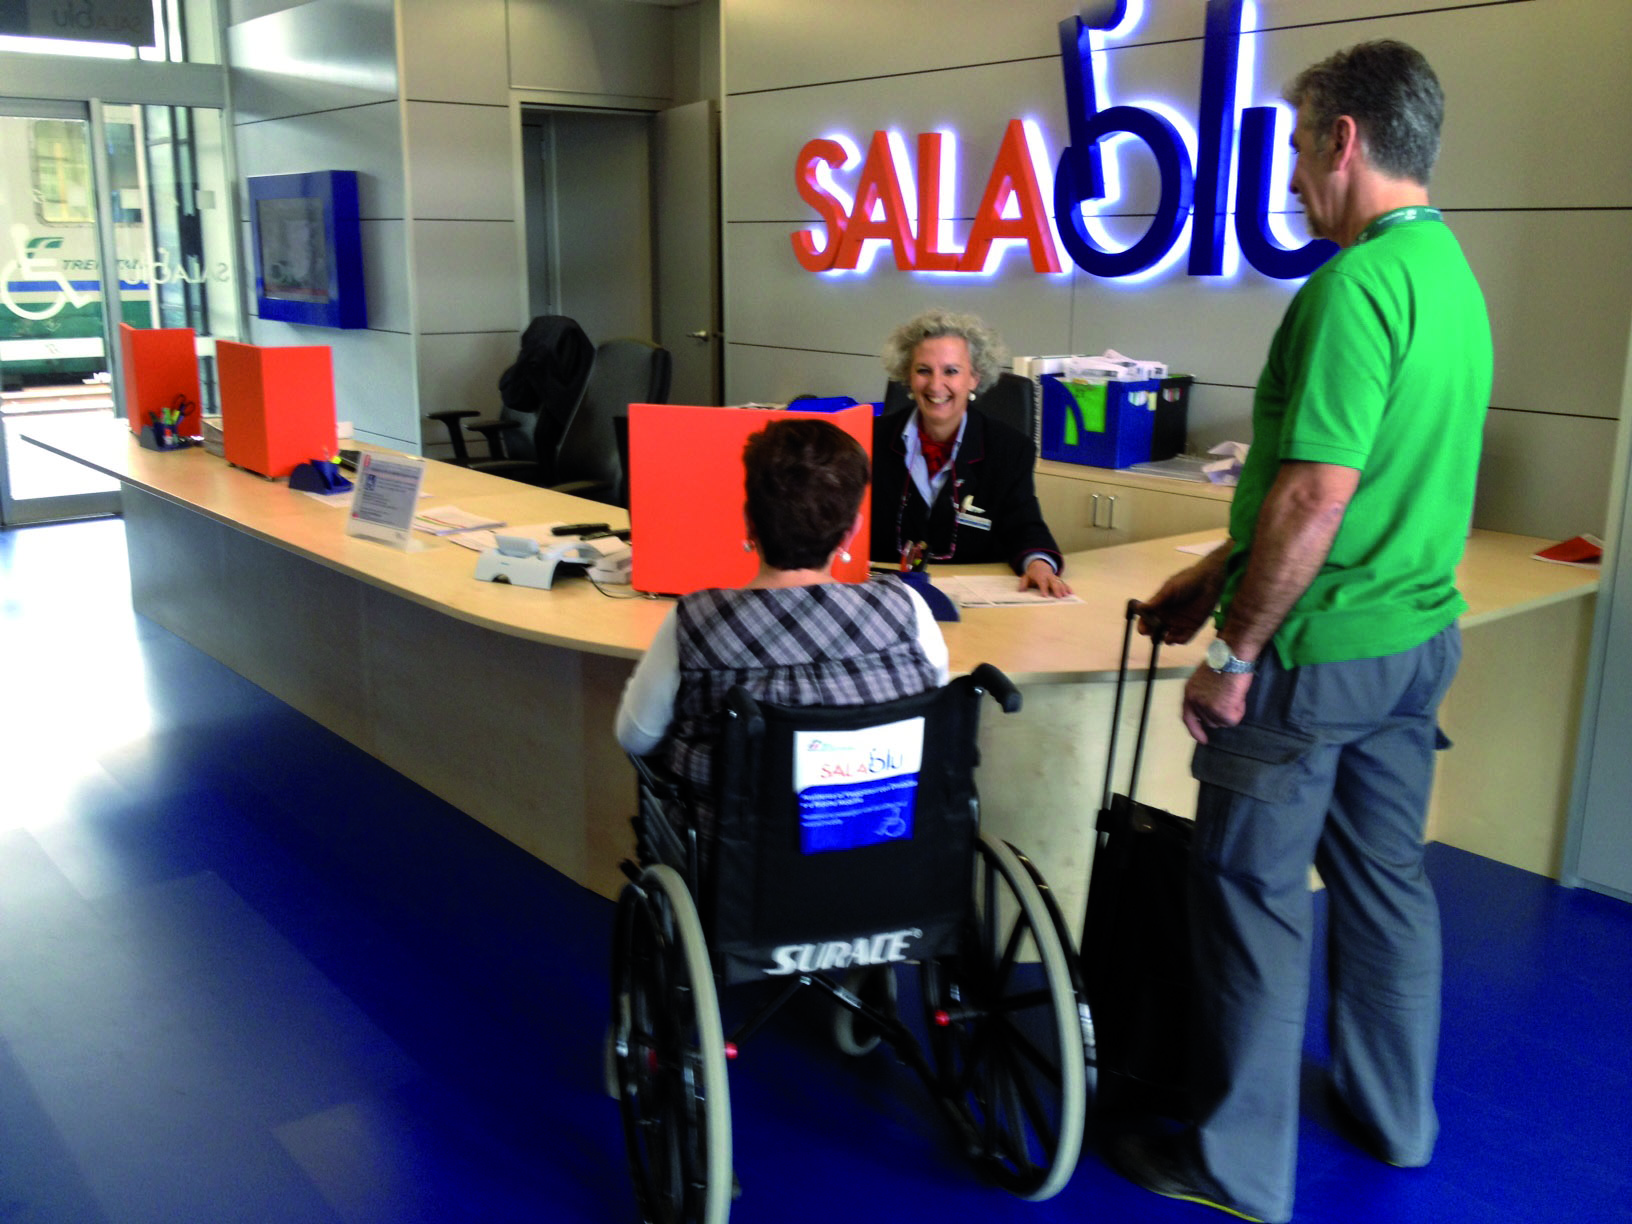 Sala Blu - Trenitalia assistance to people with reduced mobility